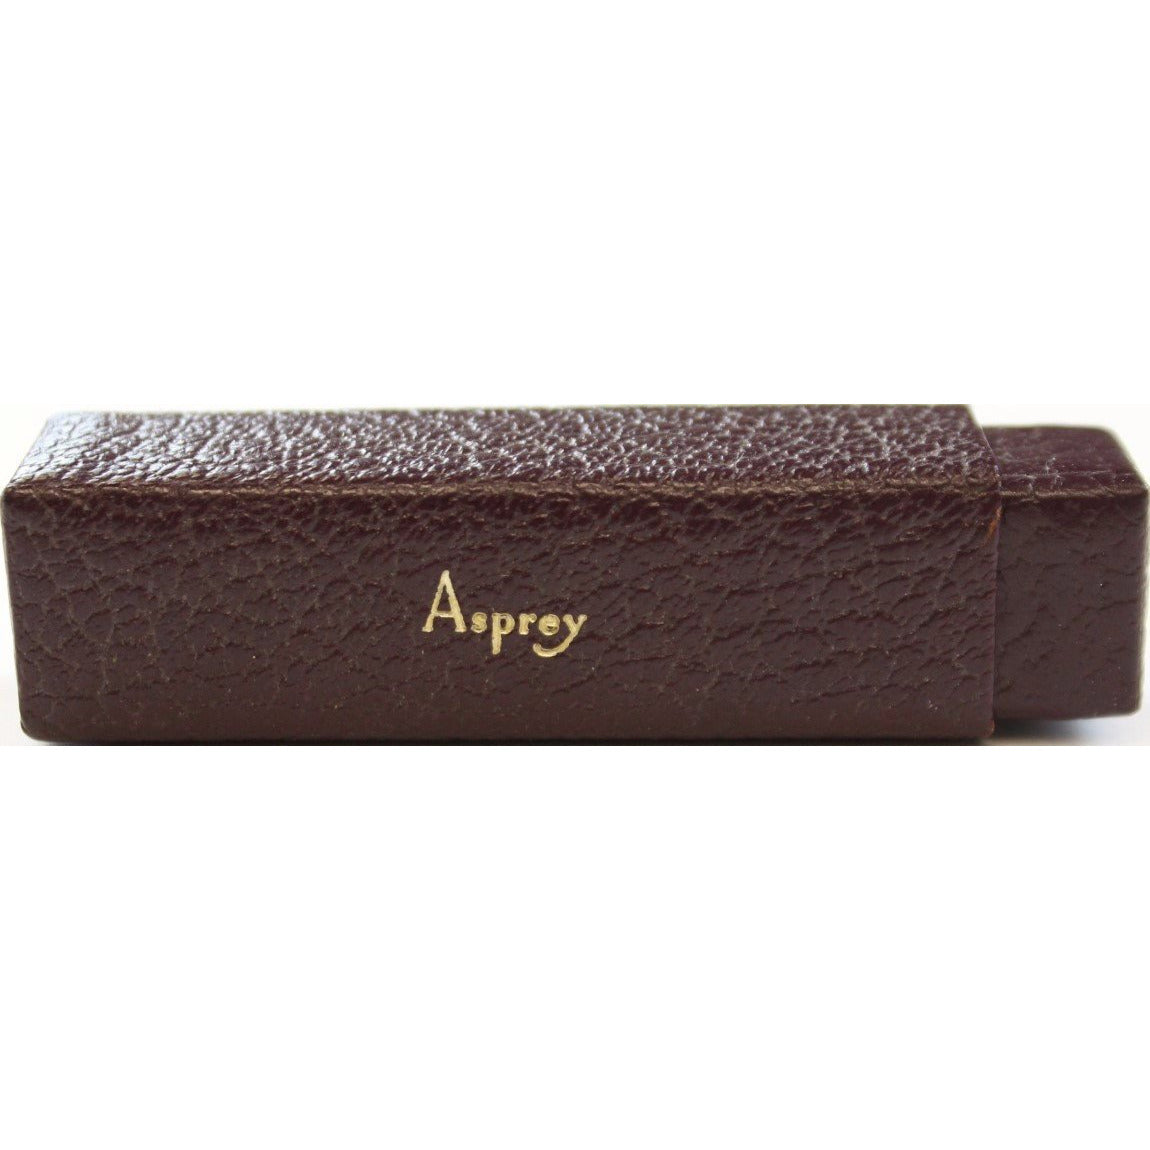 Asprey Dice Cube Set